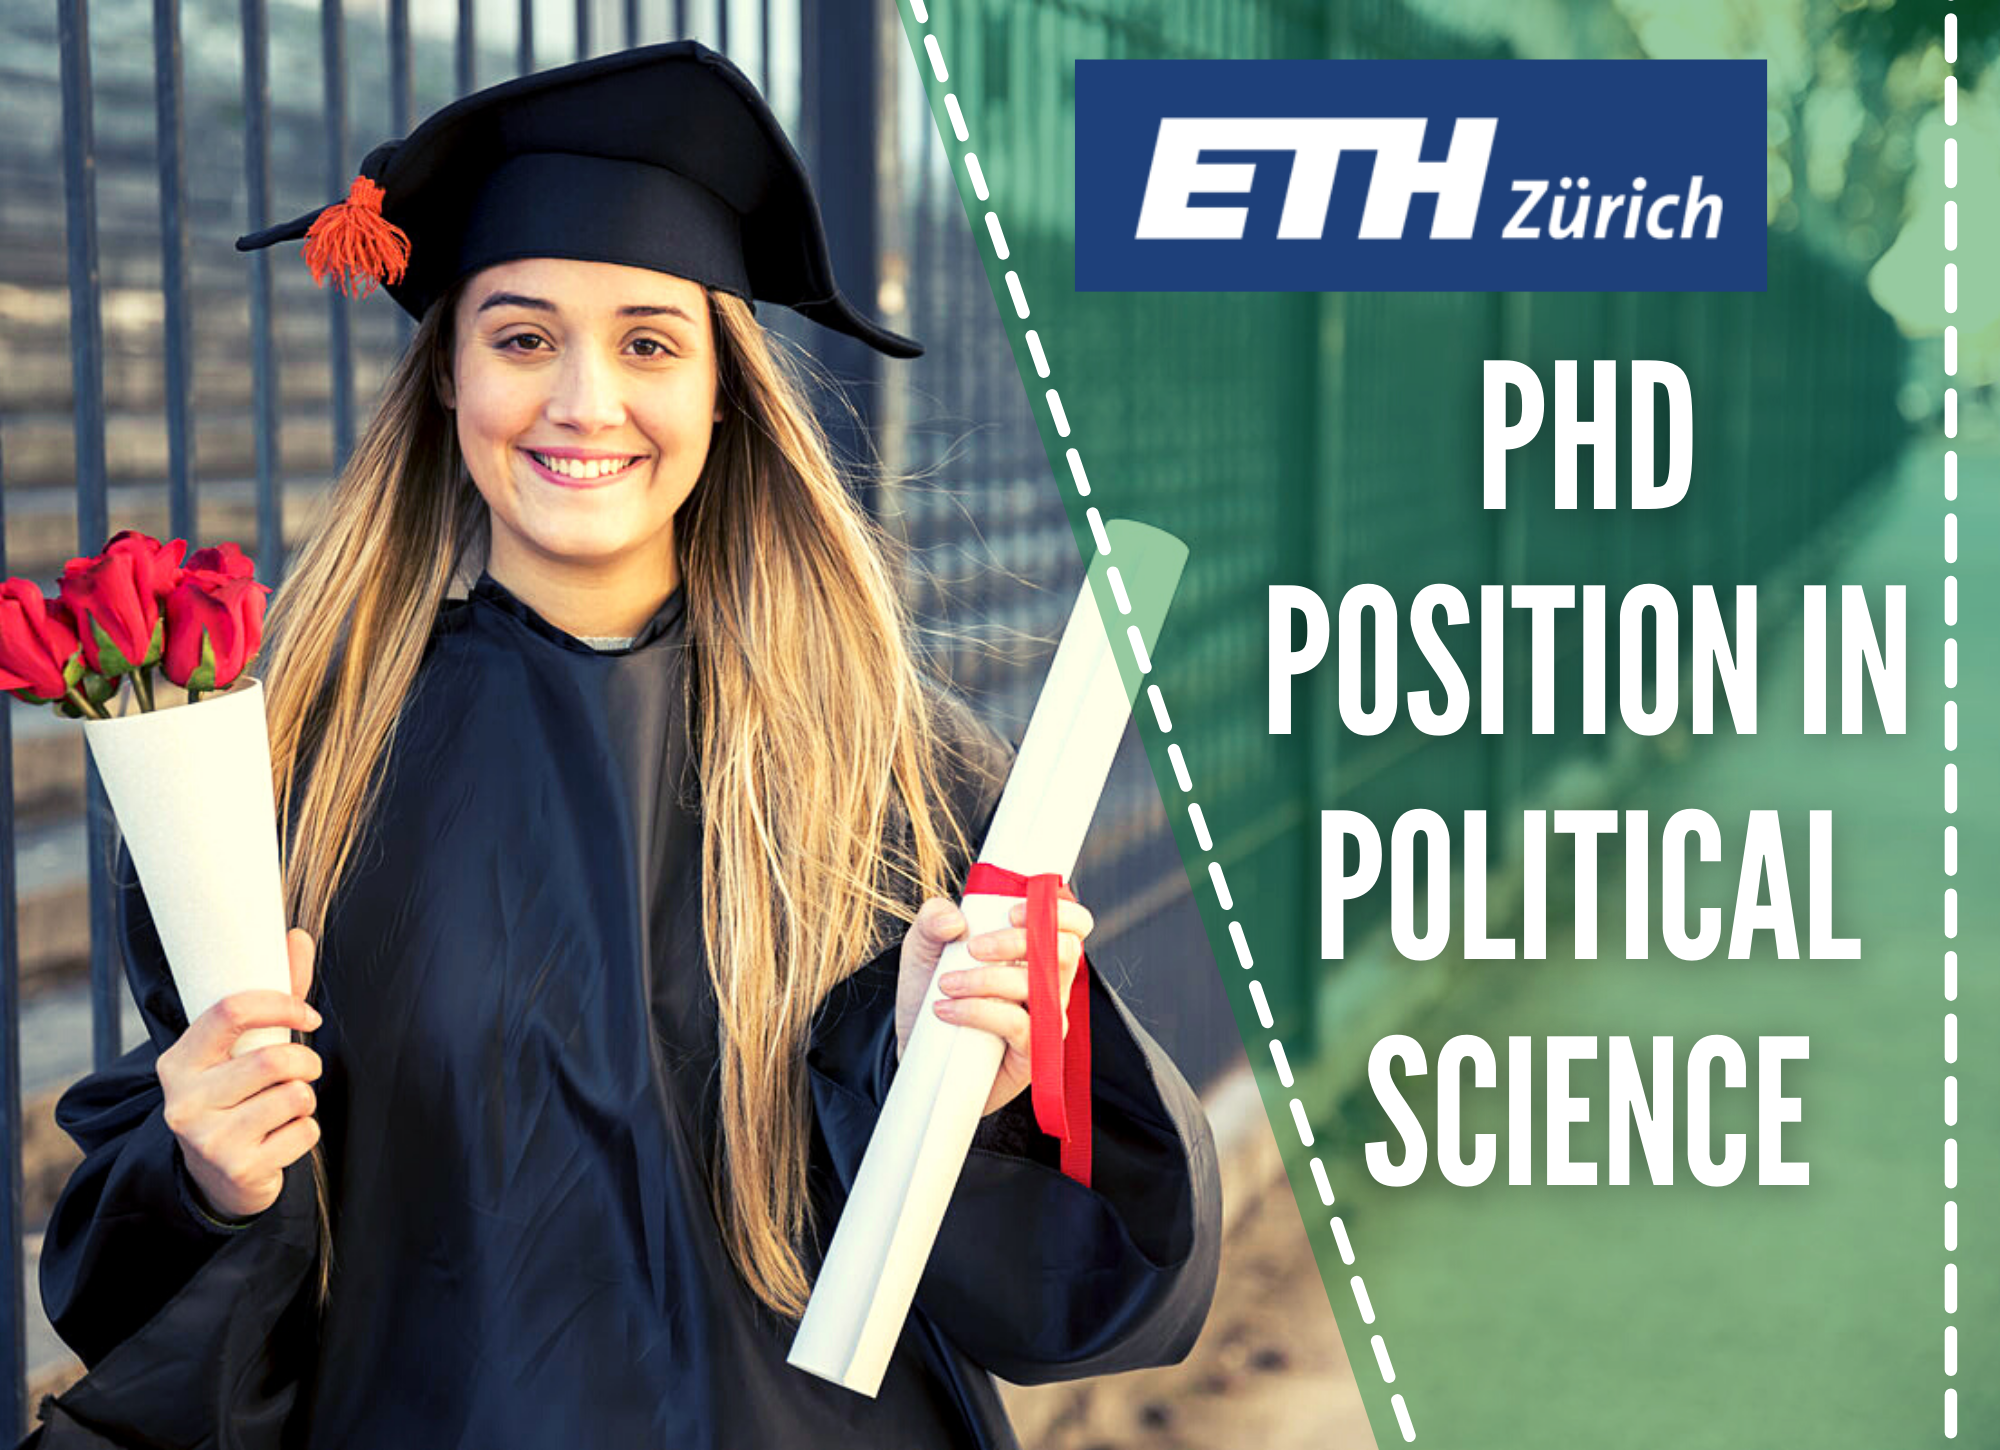 PhD Position in Political Science at the ETH Zurich University